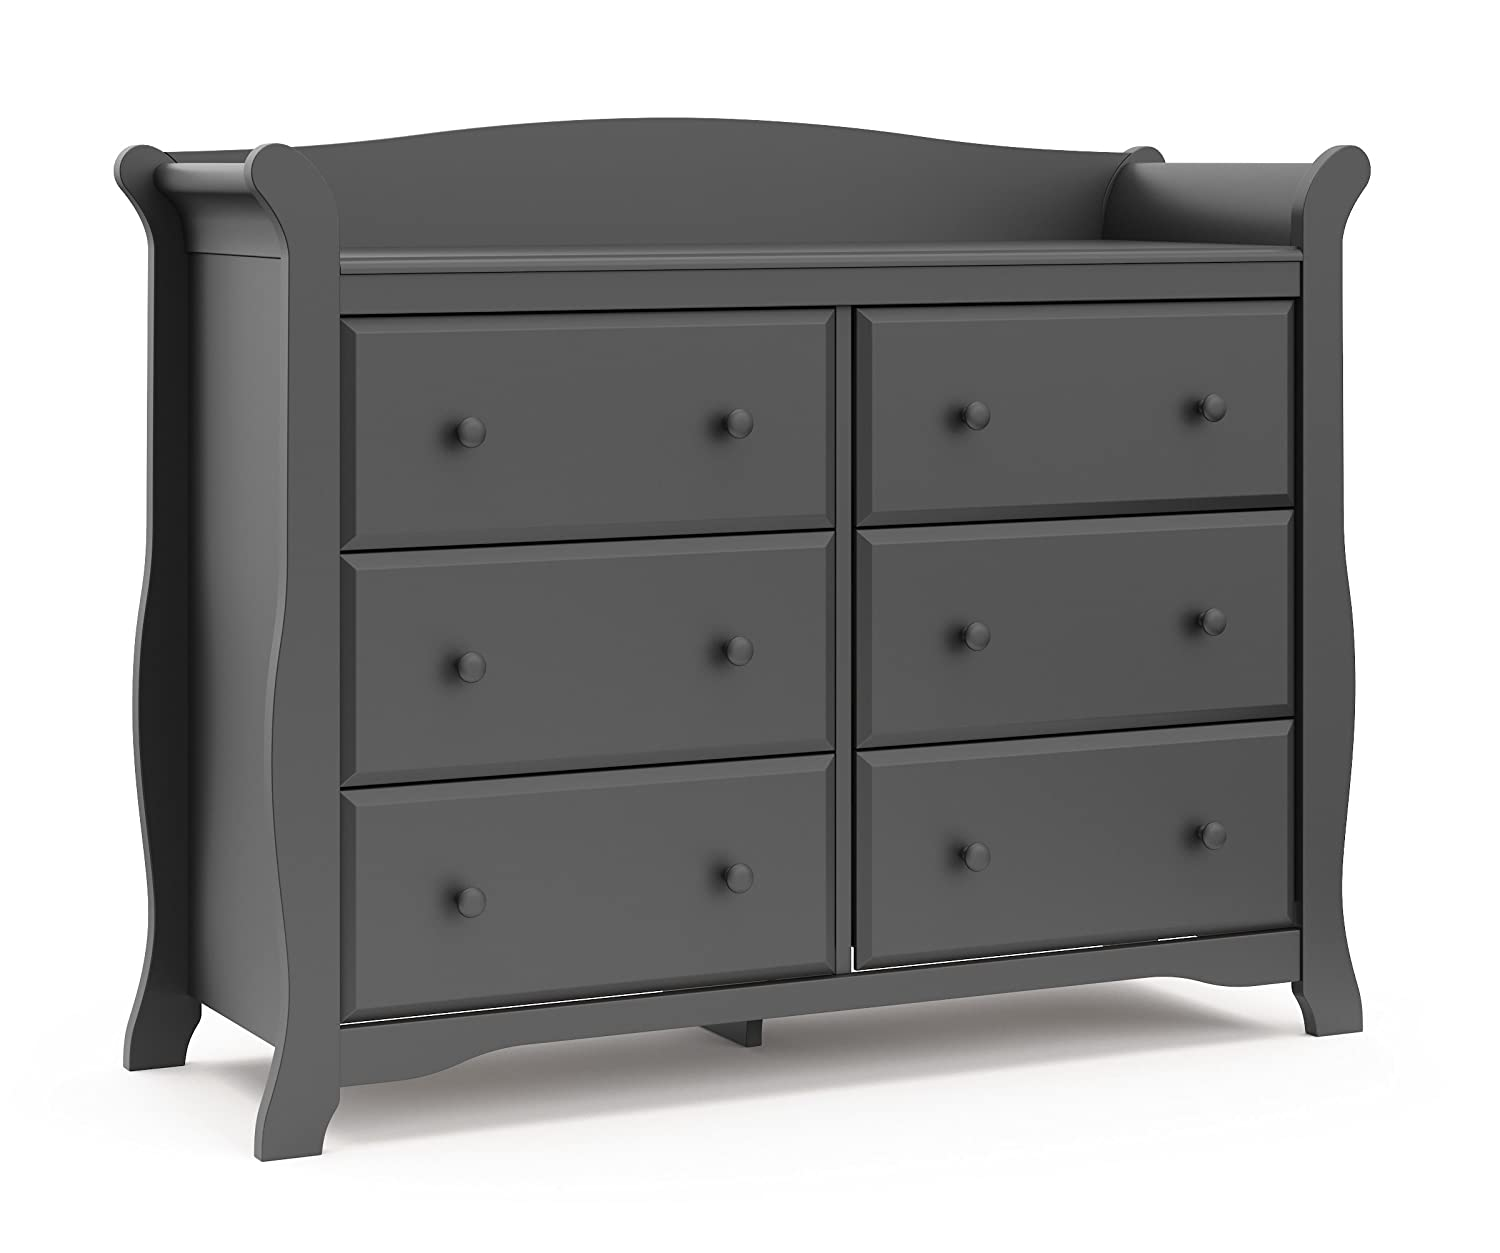 Storkcraft Avalon 6 Drawer Universal Dresser, Black Stork Craft 03556-20B